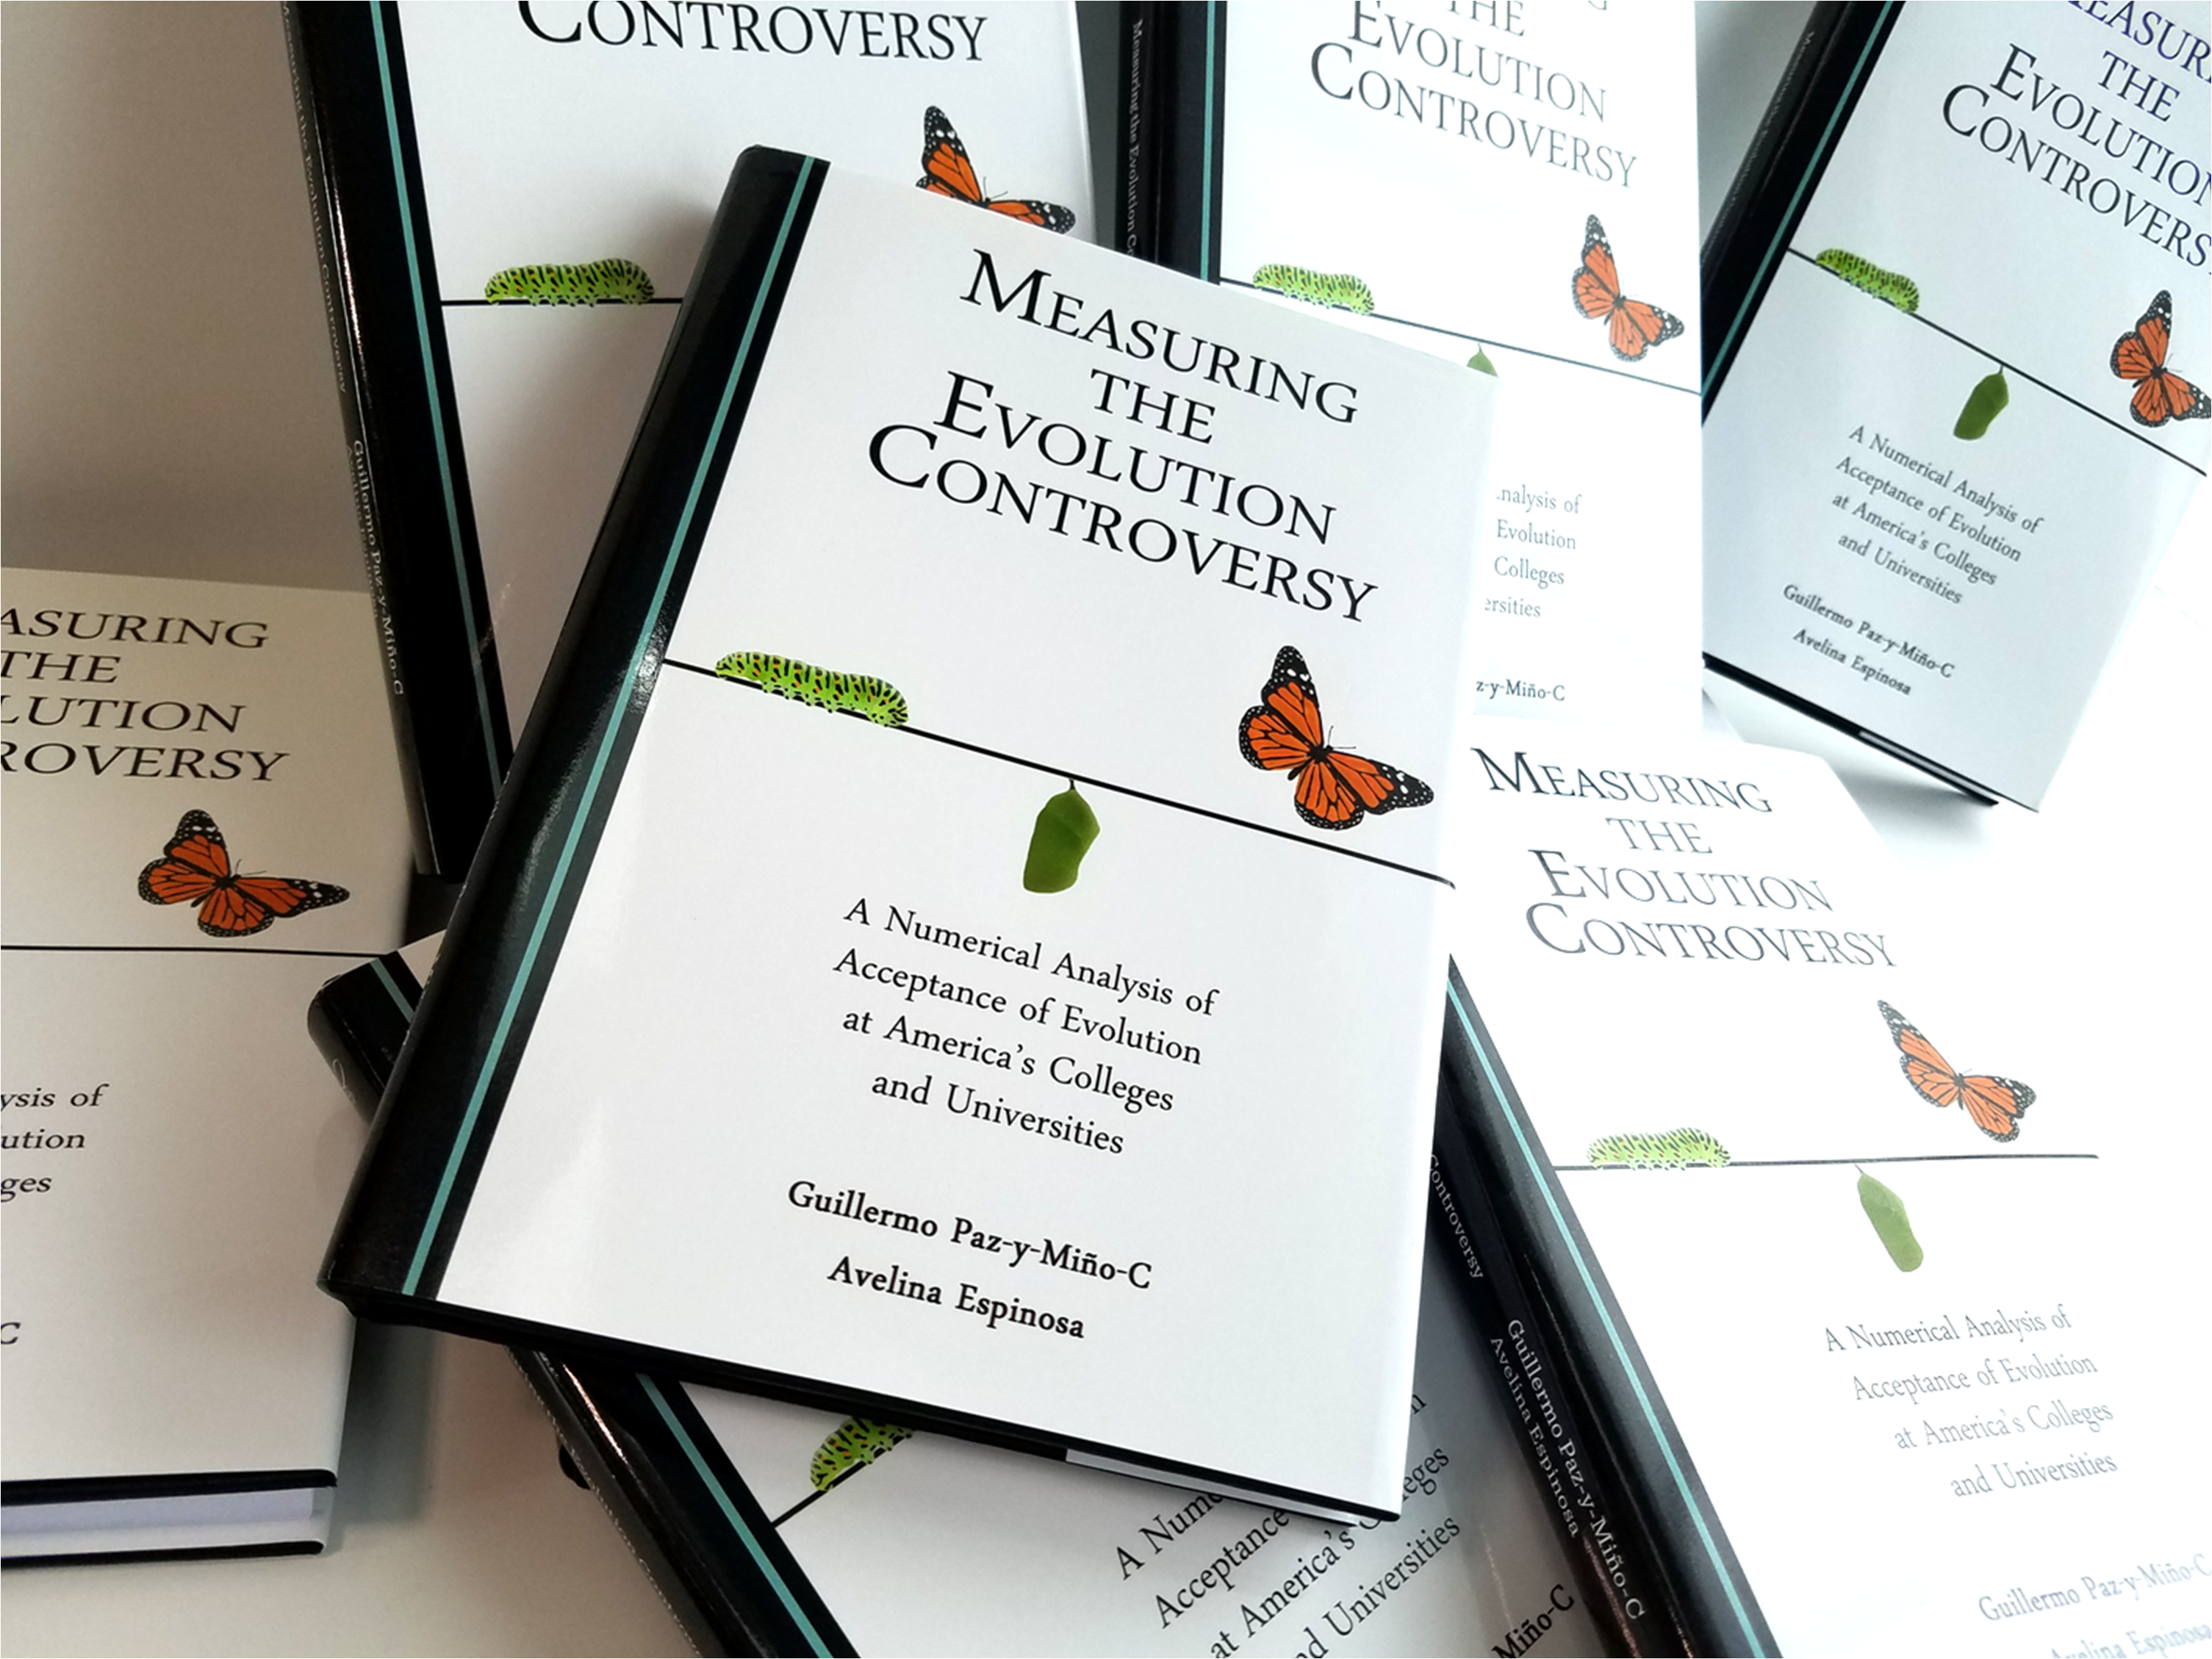 copies of measuring the evolution controversy at world libraries measuring the evolution controversy is now available at university libraries in the united states hong kong and scotland